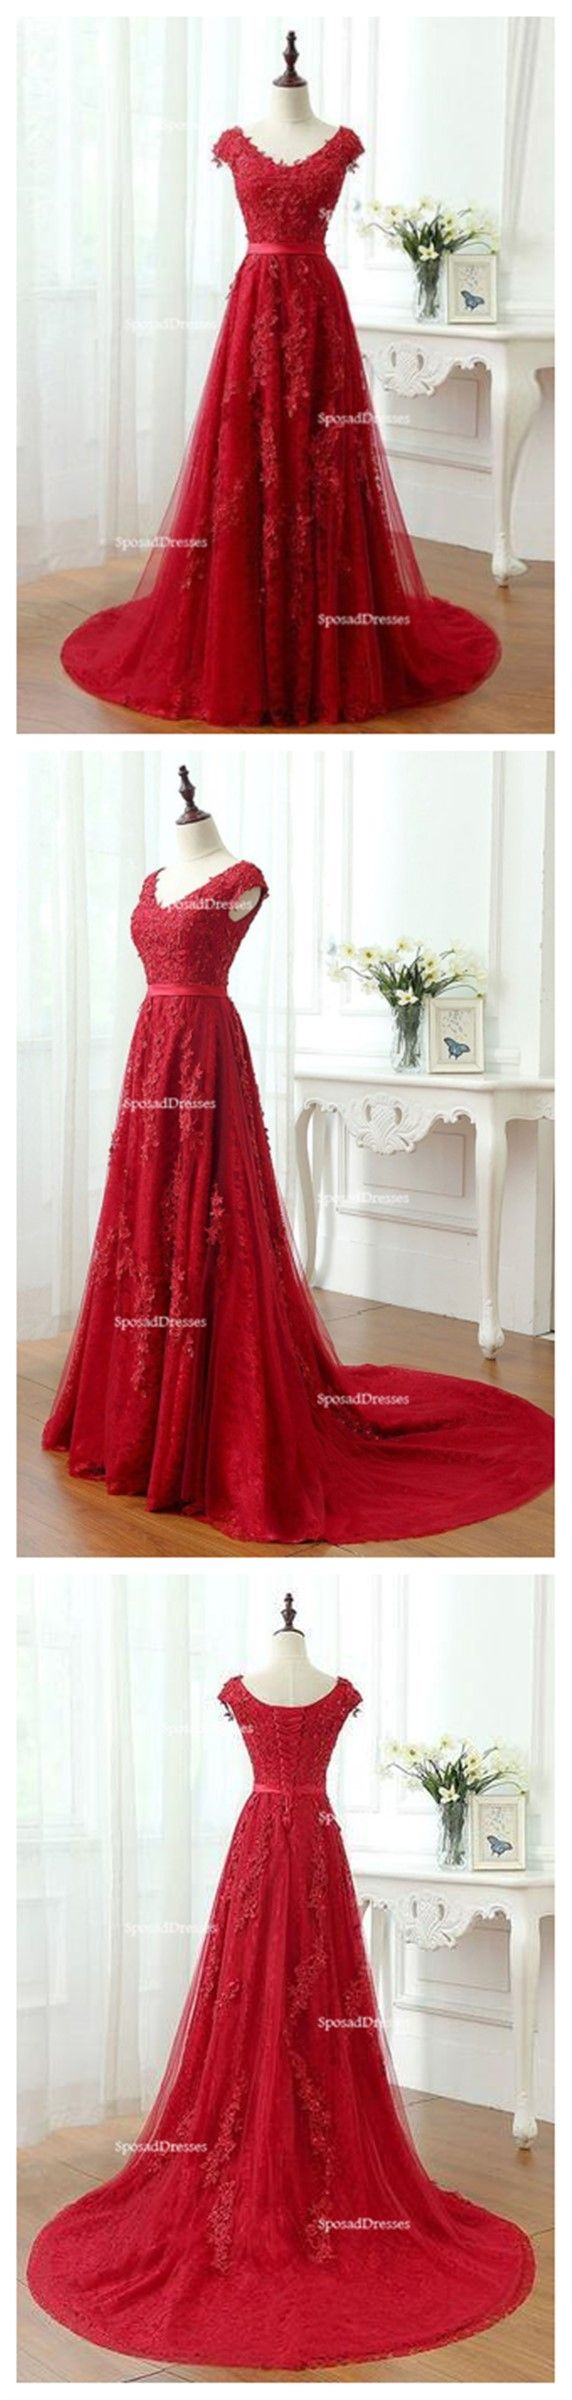 Short sleeve scoop neckline red lace beaded long evening prom